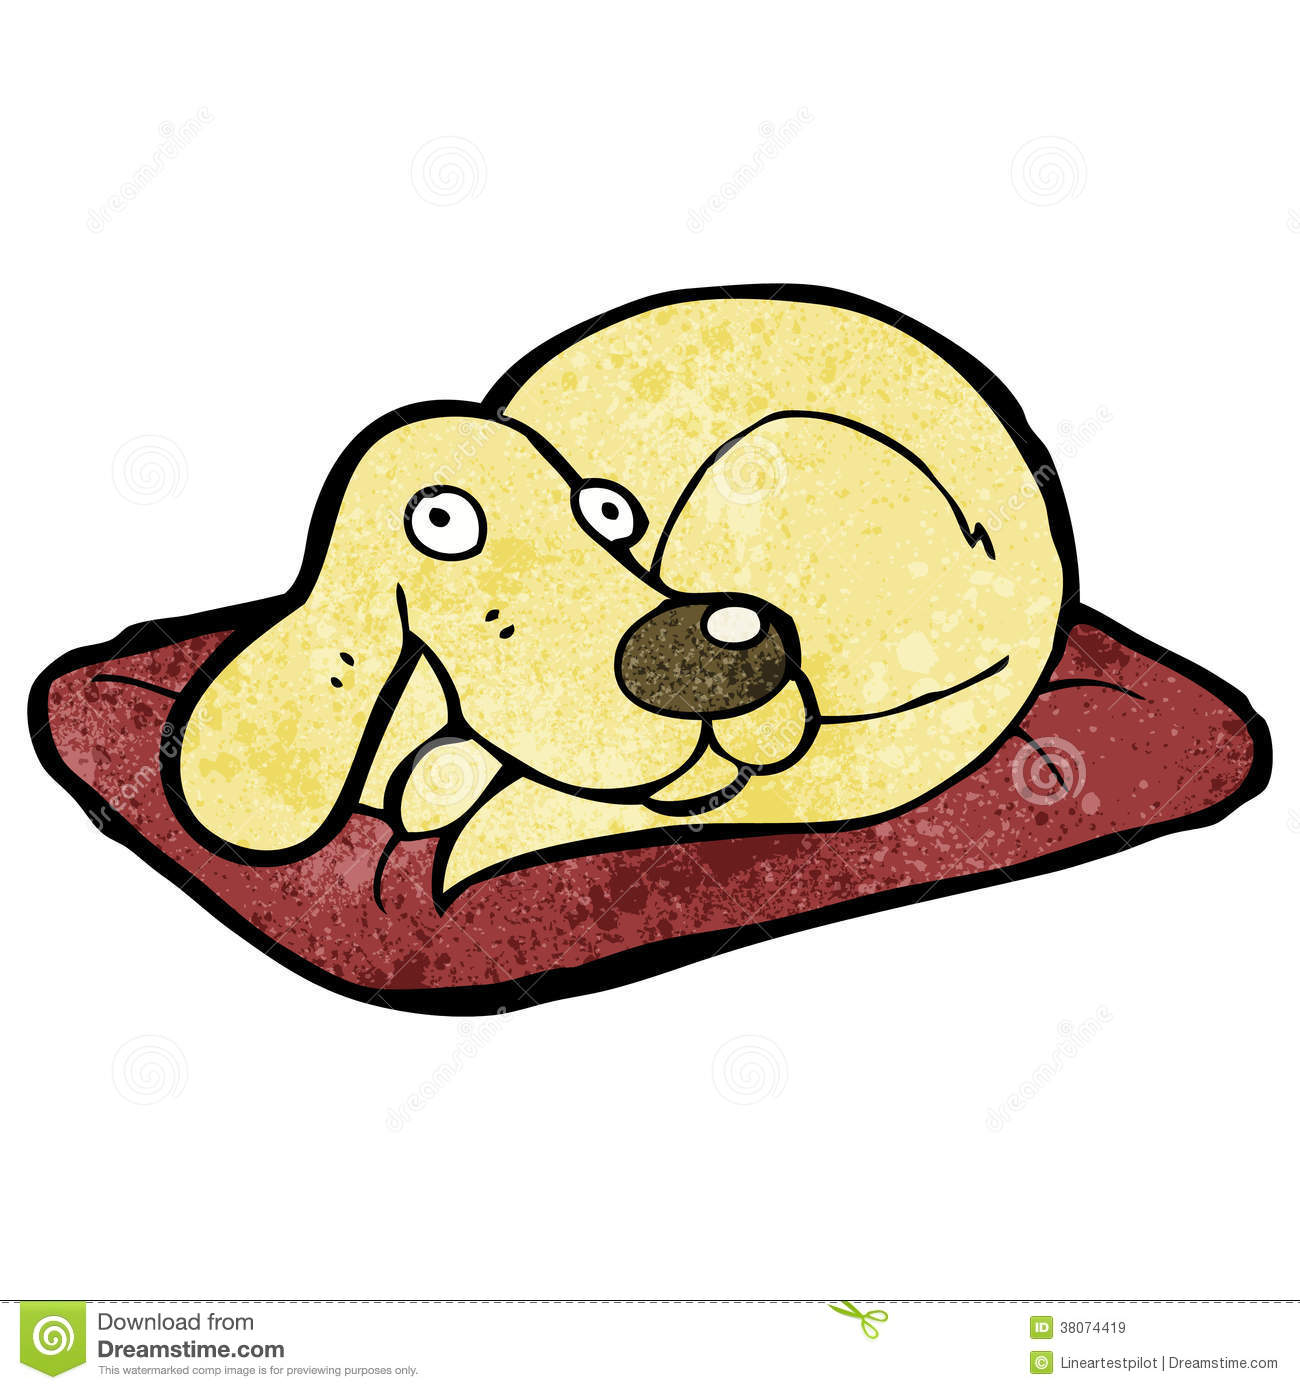 clipart dog in bed - photo #16